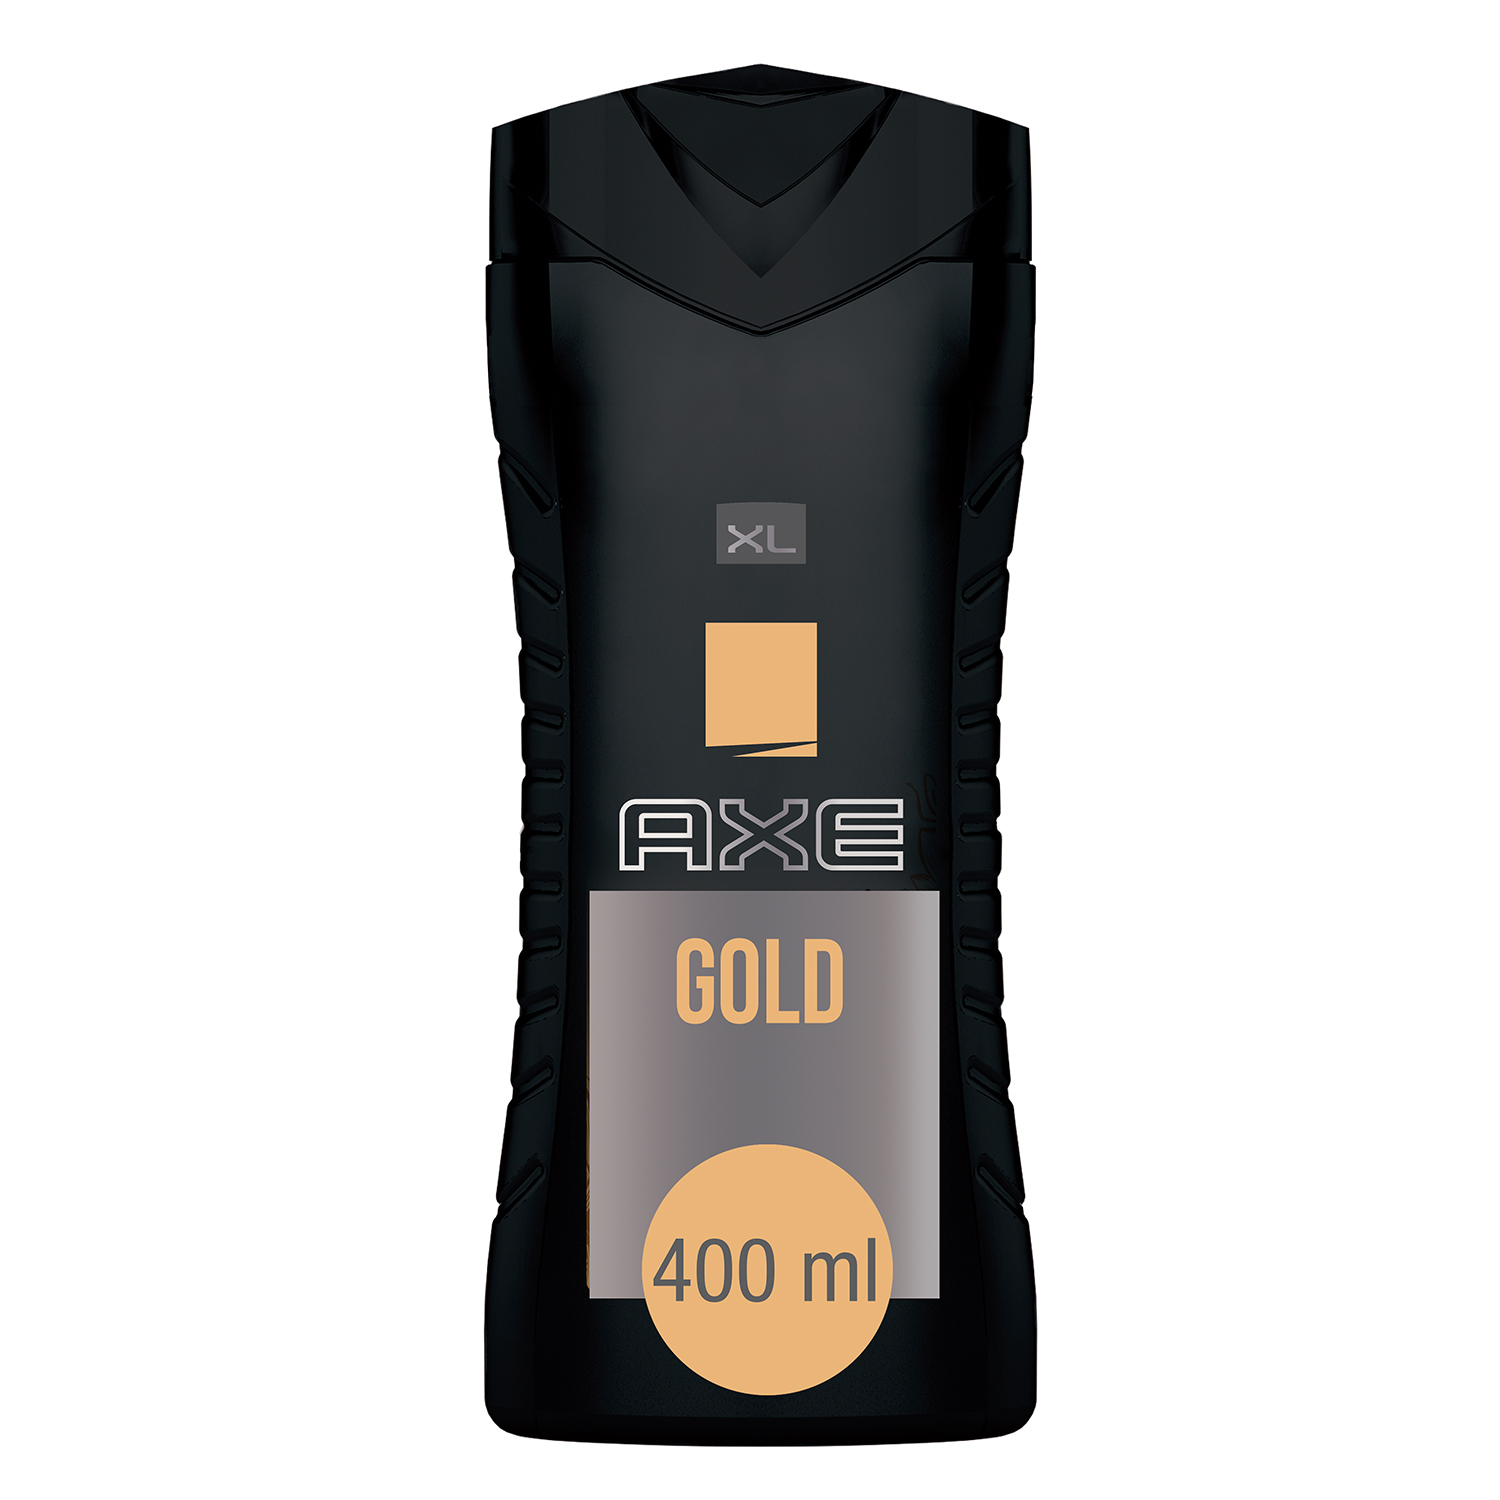 Gel de baño Gold Axe 400 ml.